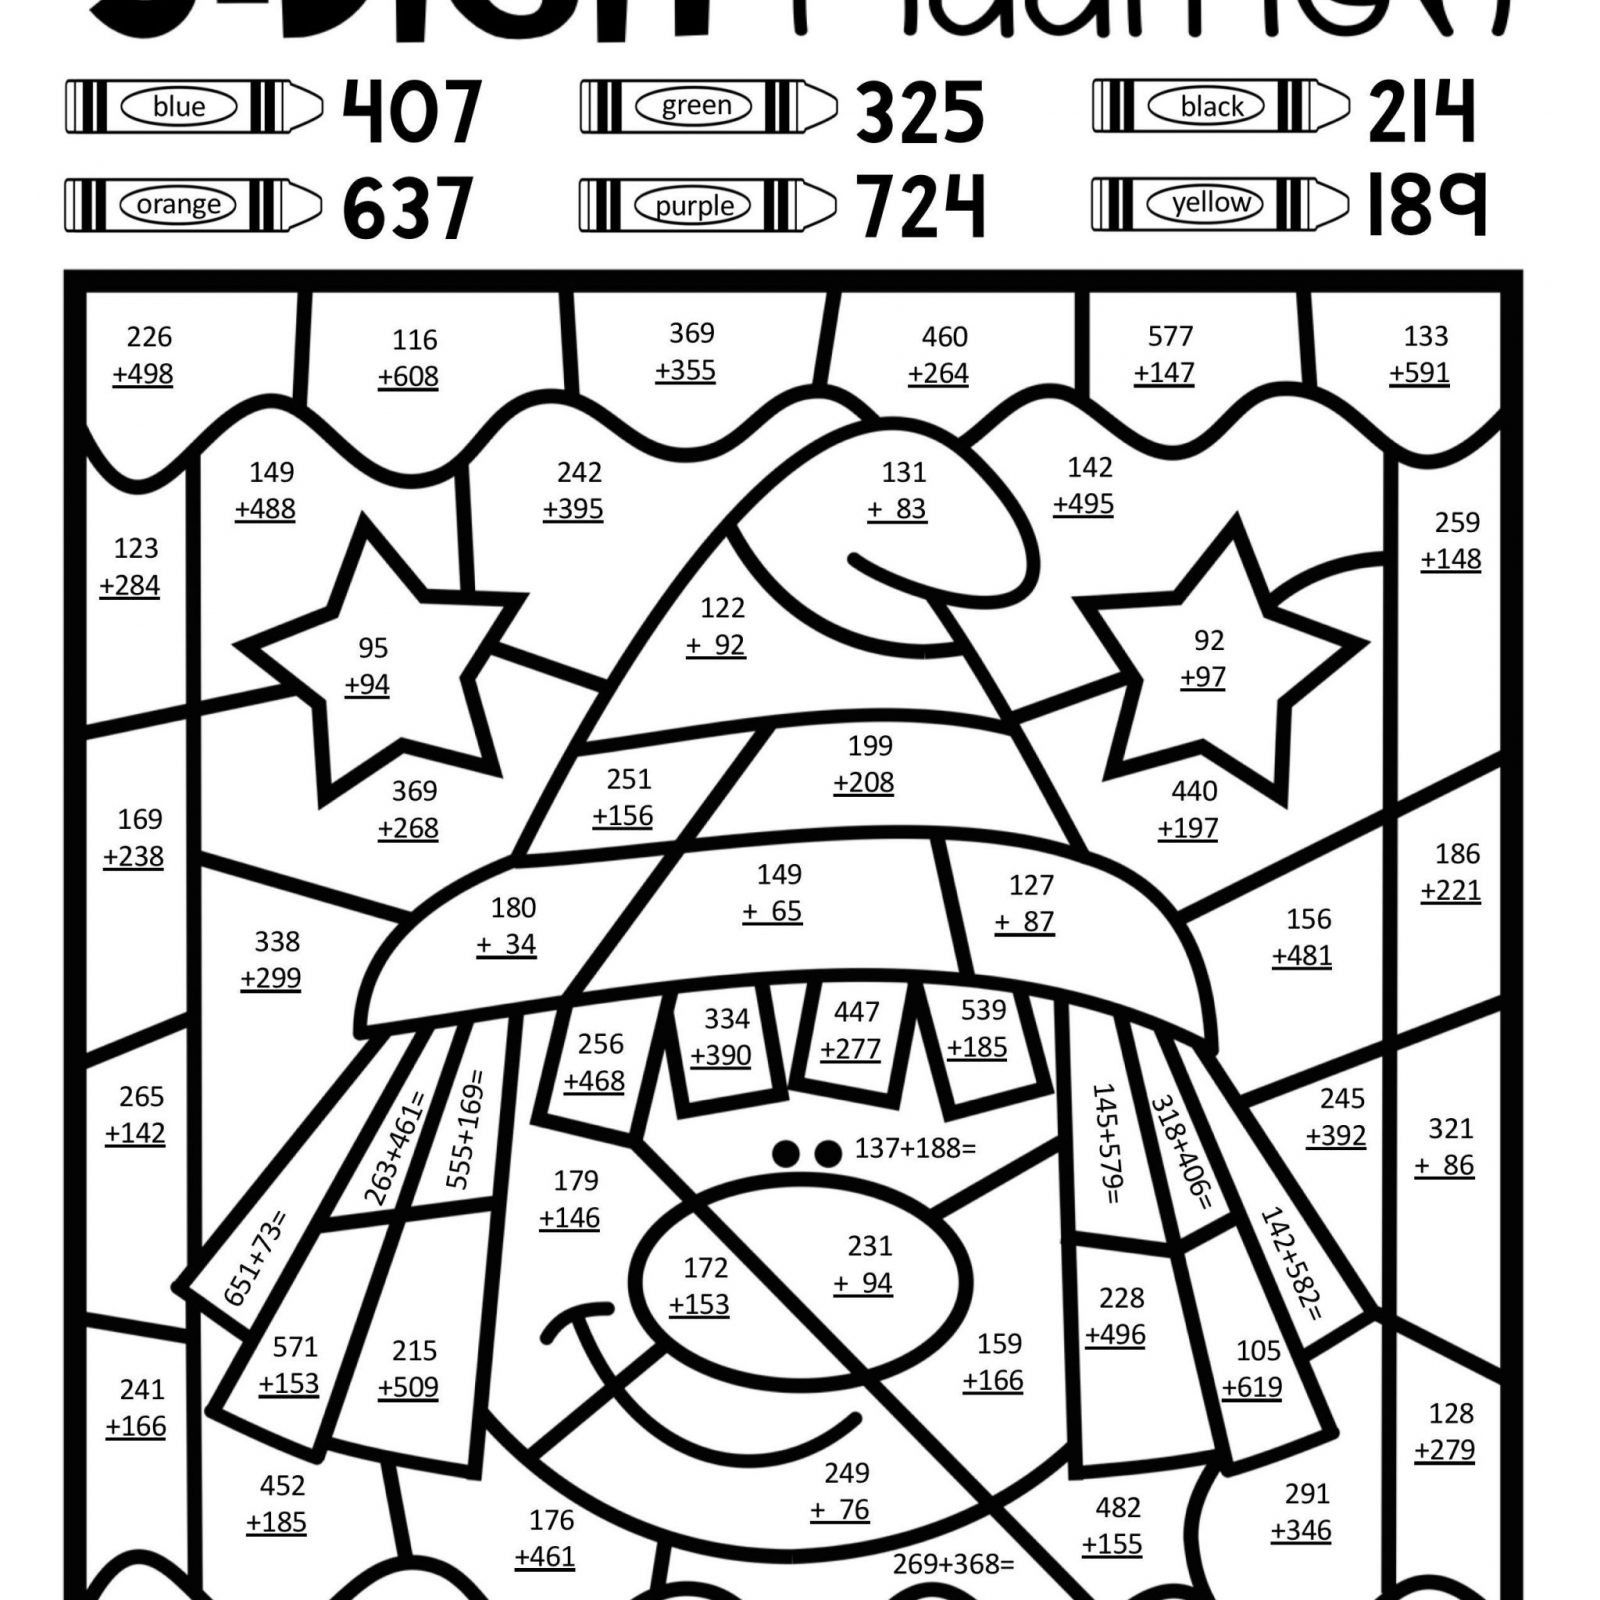 3 Free Math Worksheets Second Grade 2 Addition Add 3 Single Digits Missing Numb Halloween Math Worksheets Addition Coloring Worksheet 3rd Grade Math Worksheets Repeated addition worksheets year 2